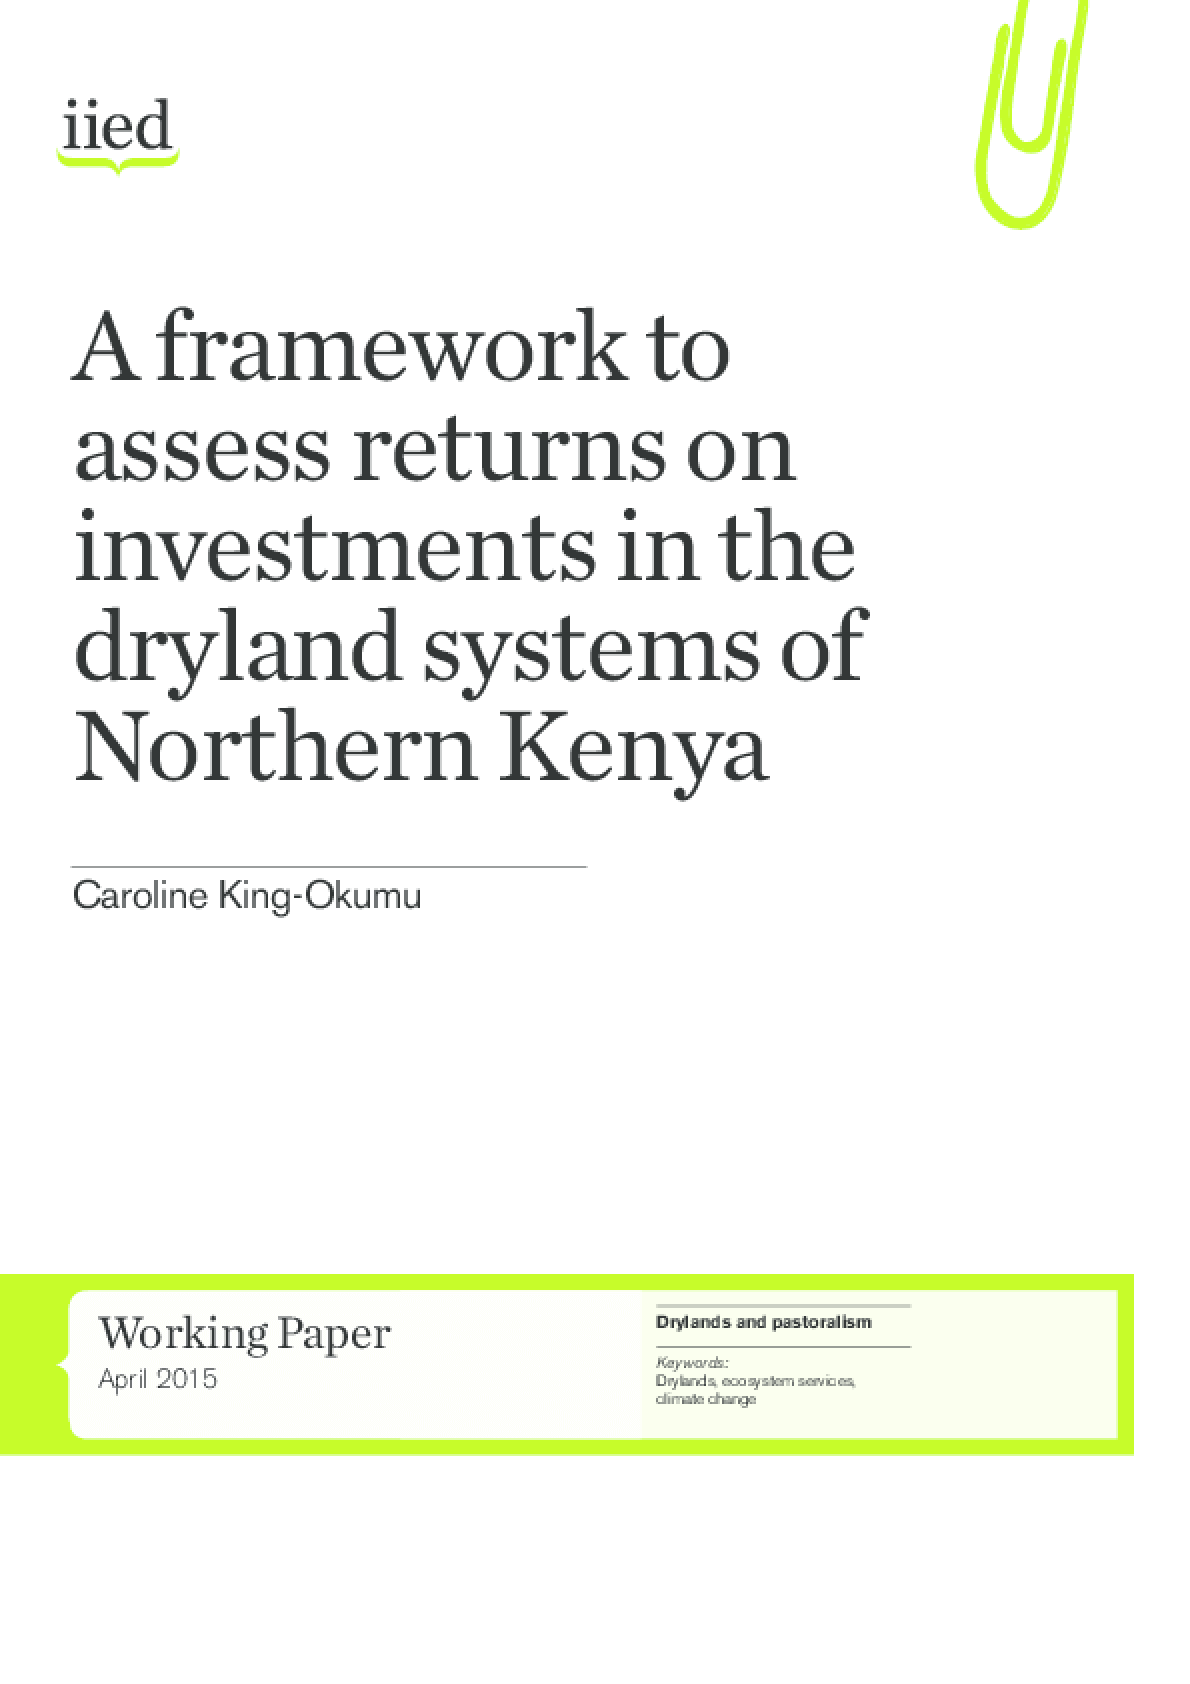 A Framework to Assess Returns on Investments in the Dryland Systems of Northern Kenya